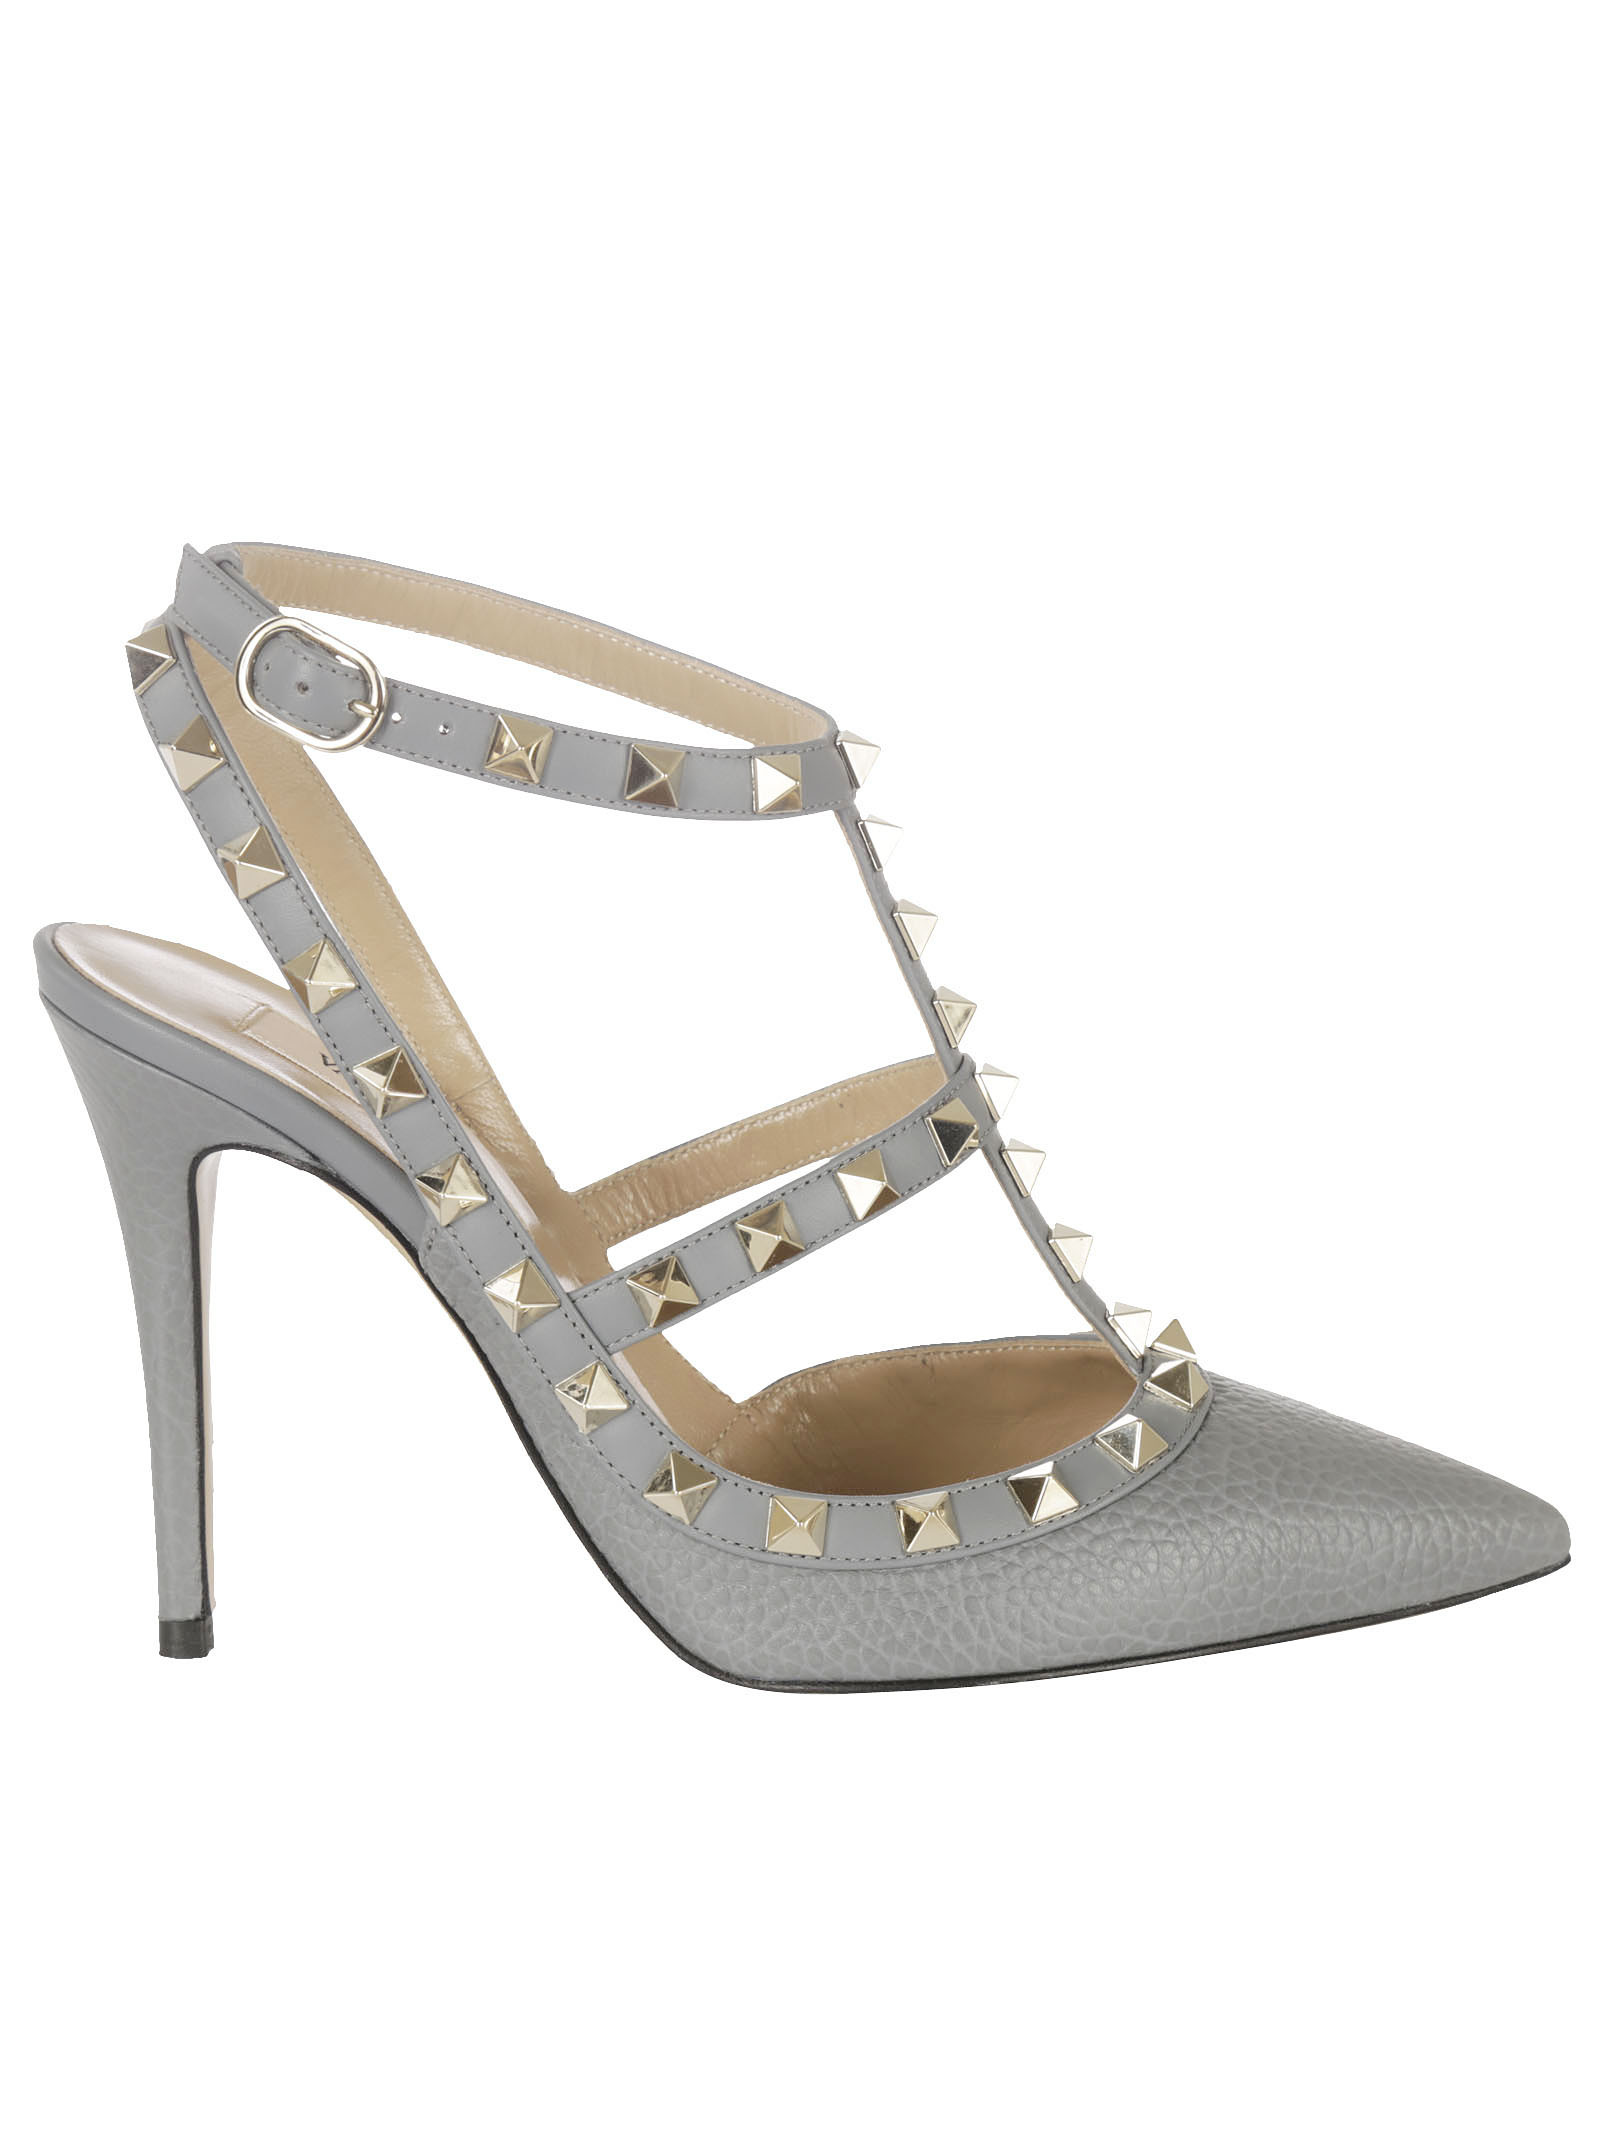 Studded Pumps from Valentino: Grey Studded Pumps with ankle strap, closed toe and a high heel